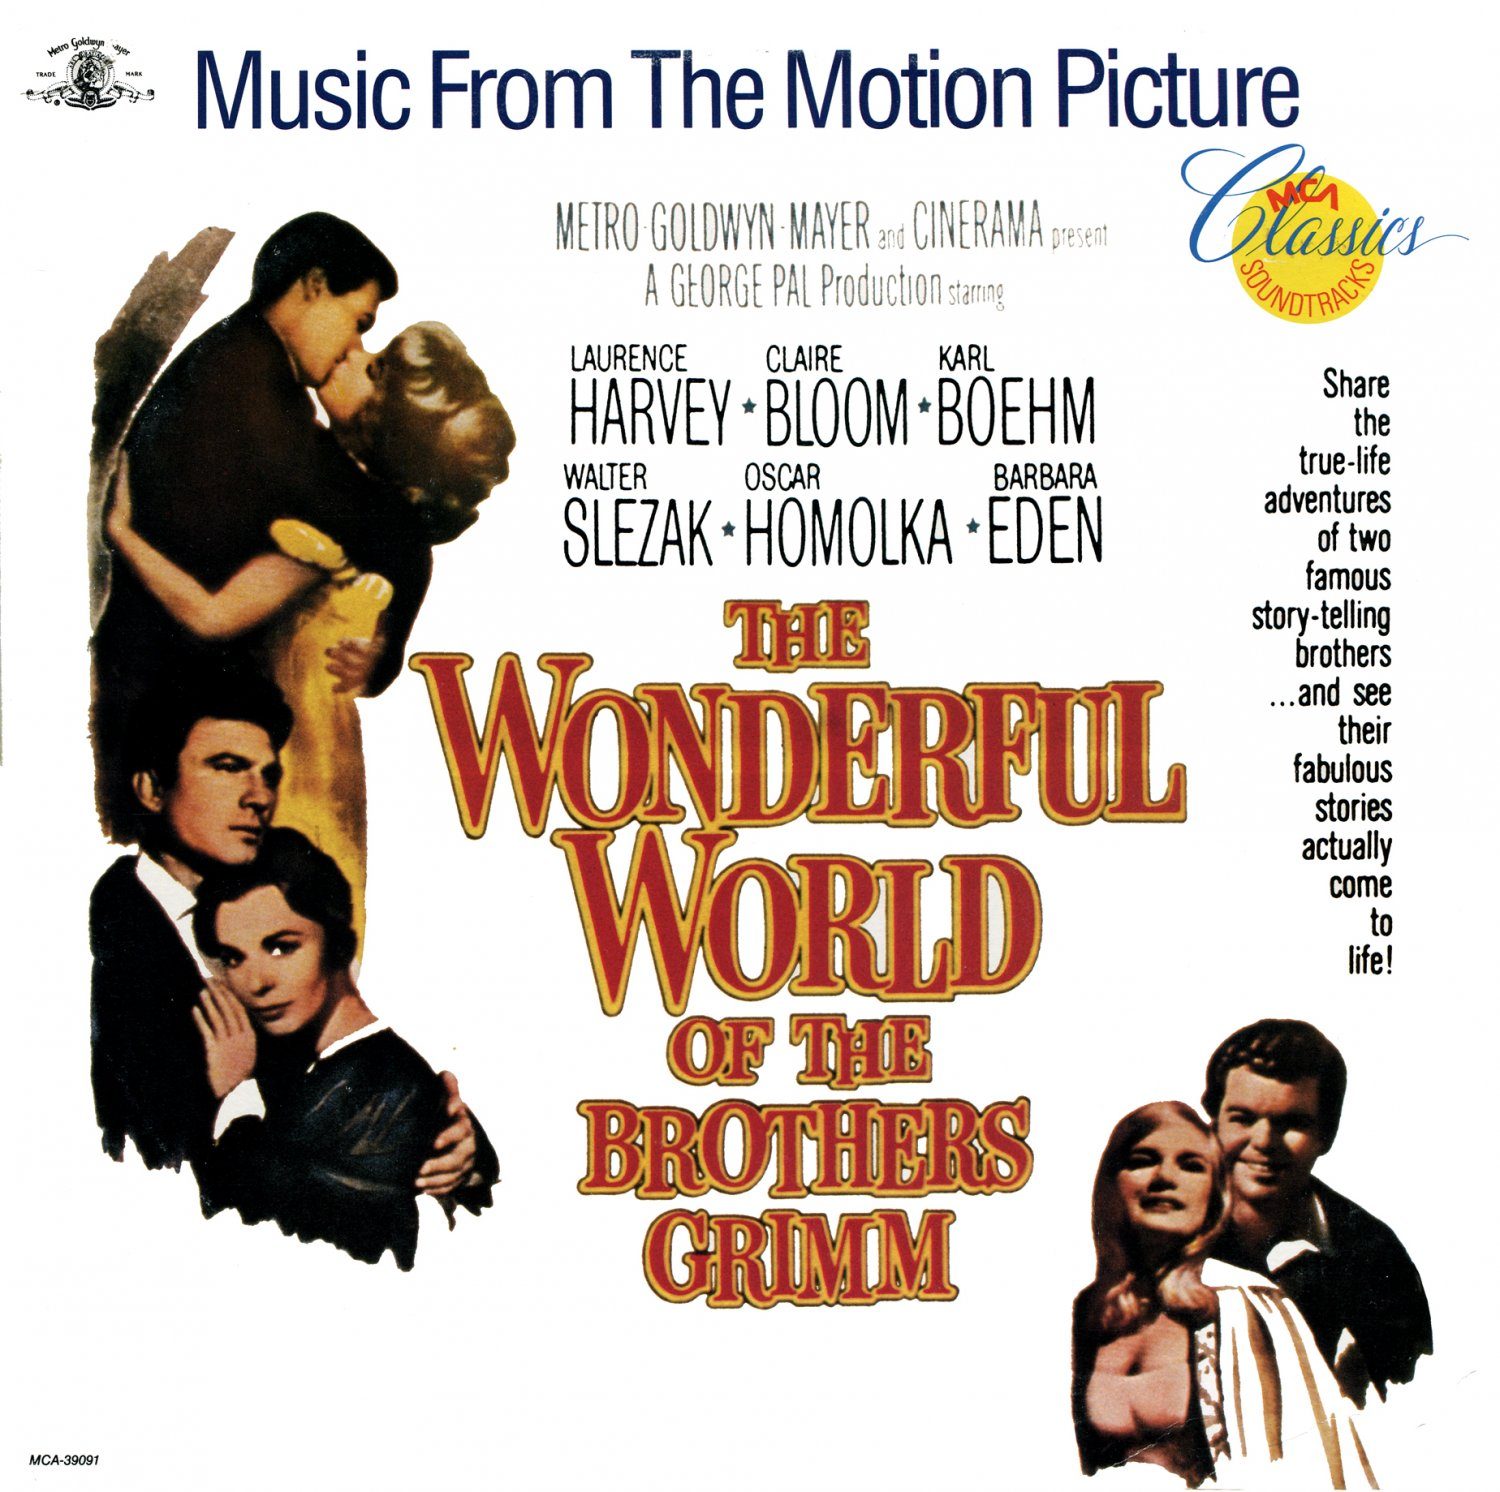 The Wonderful World Of The Brothers Grimm (1963) - Original Soundtrack, Buddy Hackett OST LP/CD